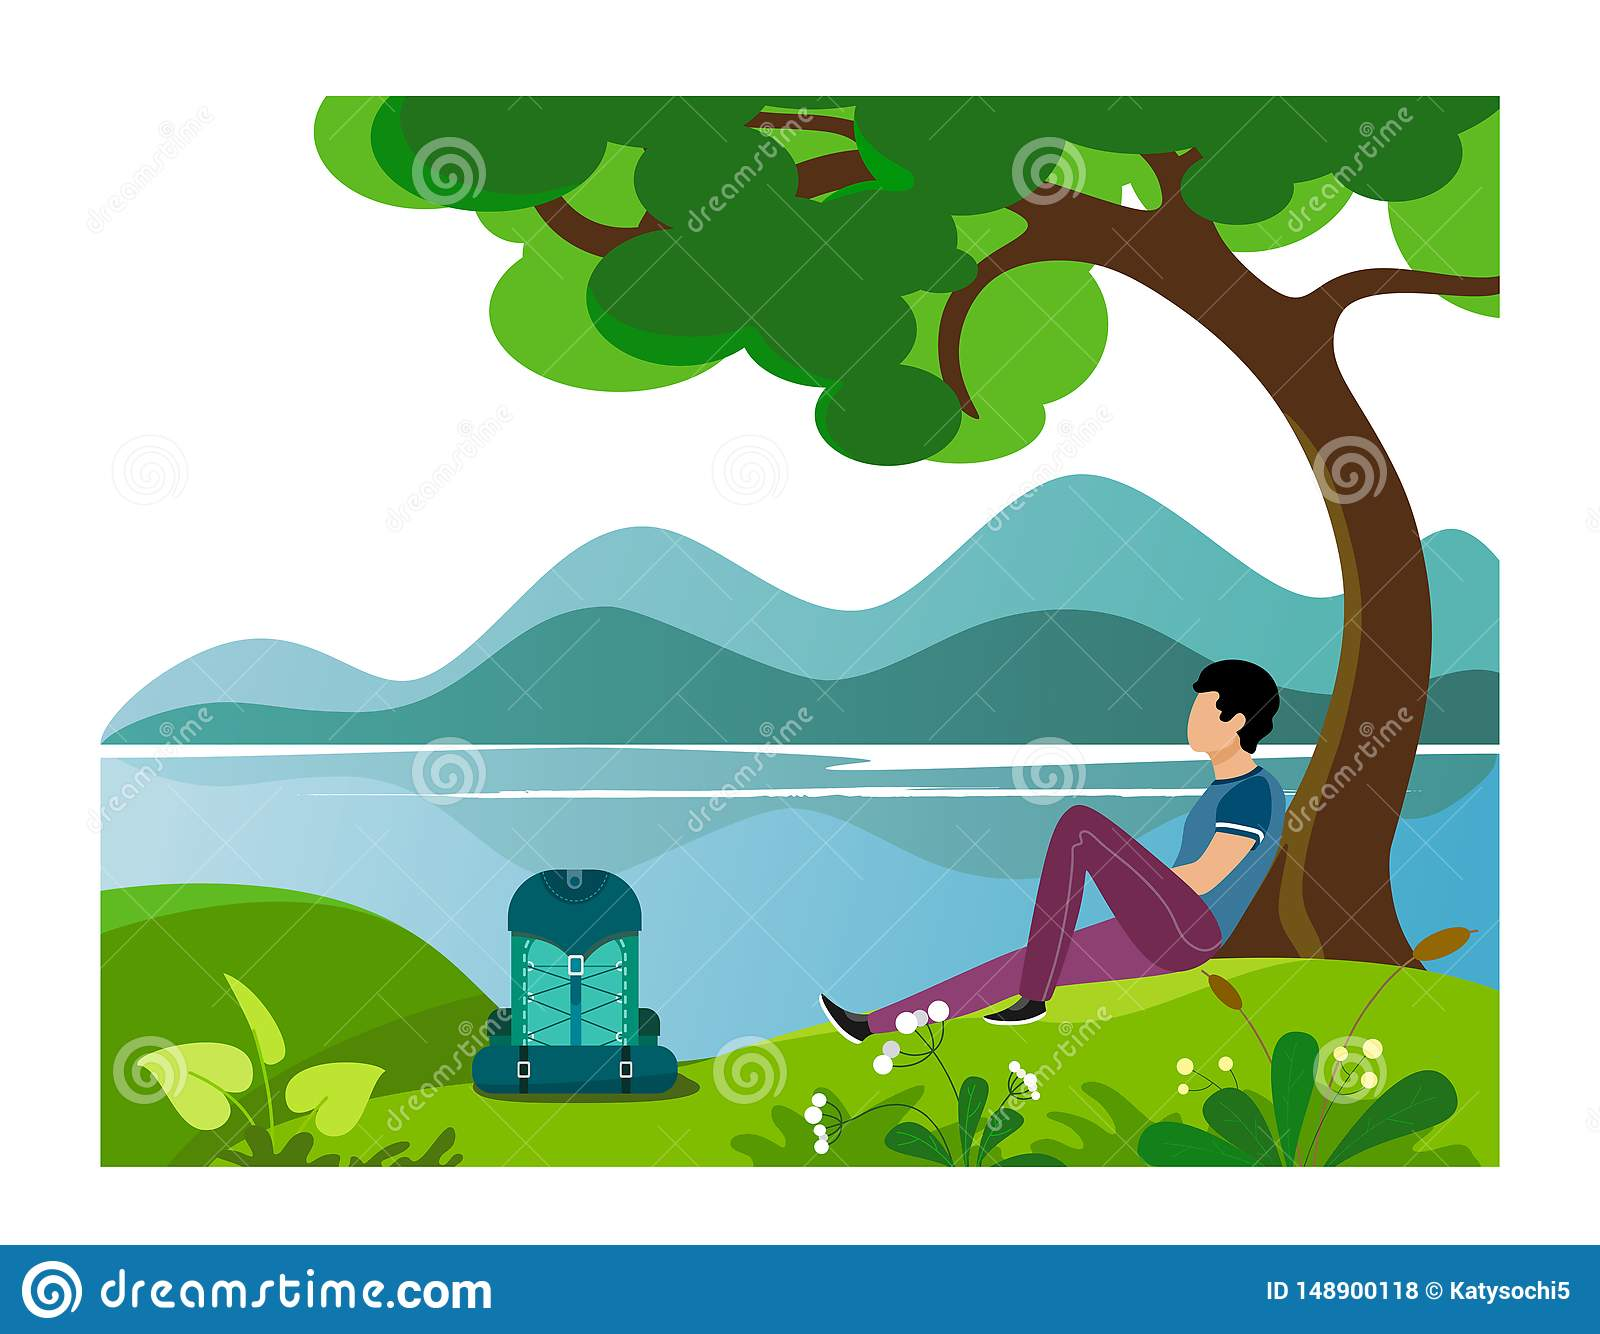 Cartoon River Tree Stock Illustrations 8 562 Cartoon River Tree Stock Illustrations Vectors Clipart Dreamstime Download cartoon trees graphic vector in ai format. https www dreamstime com man resting under tree image148900118